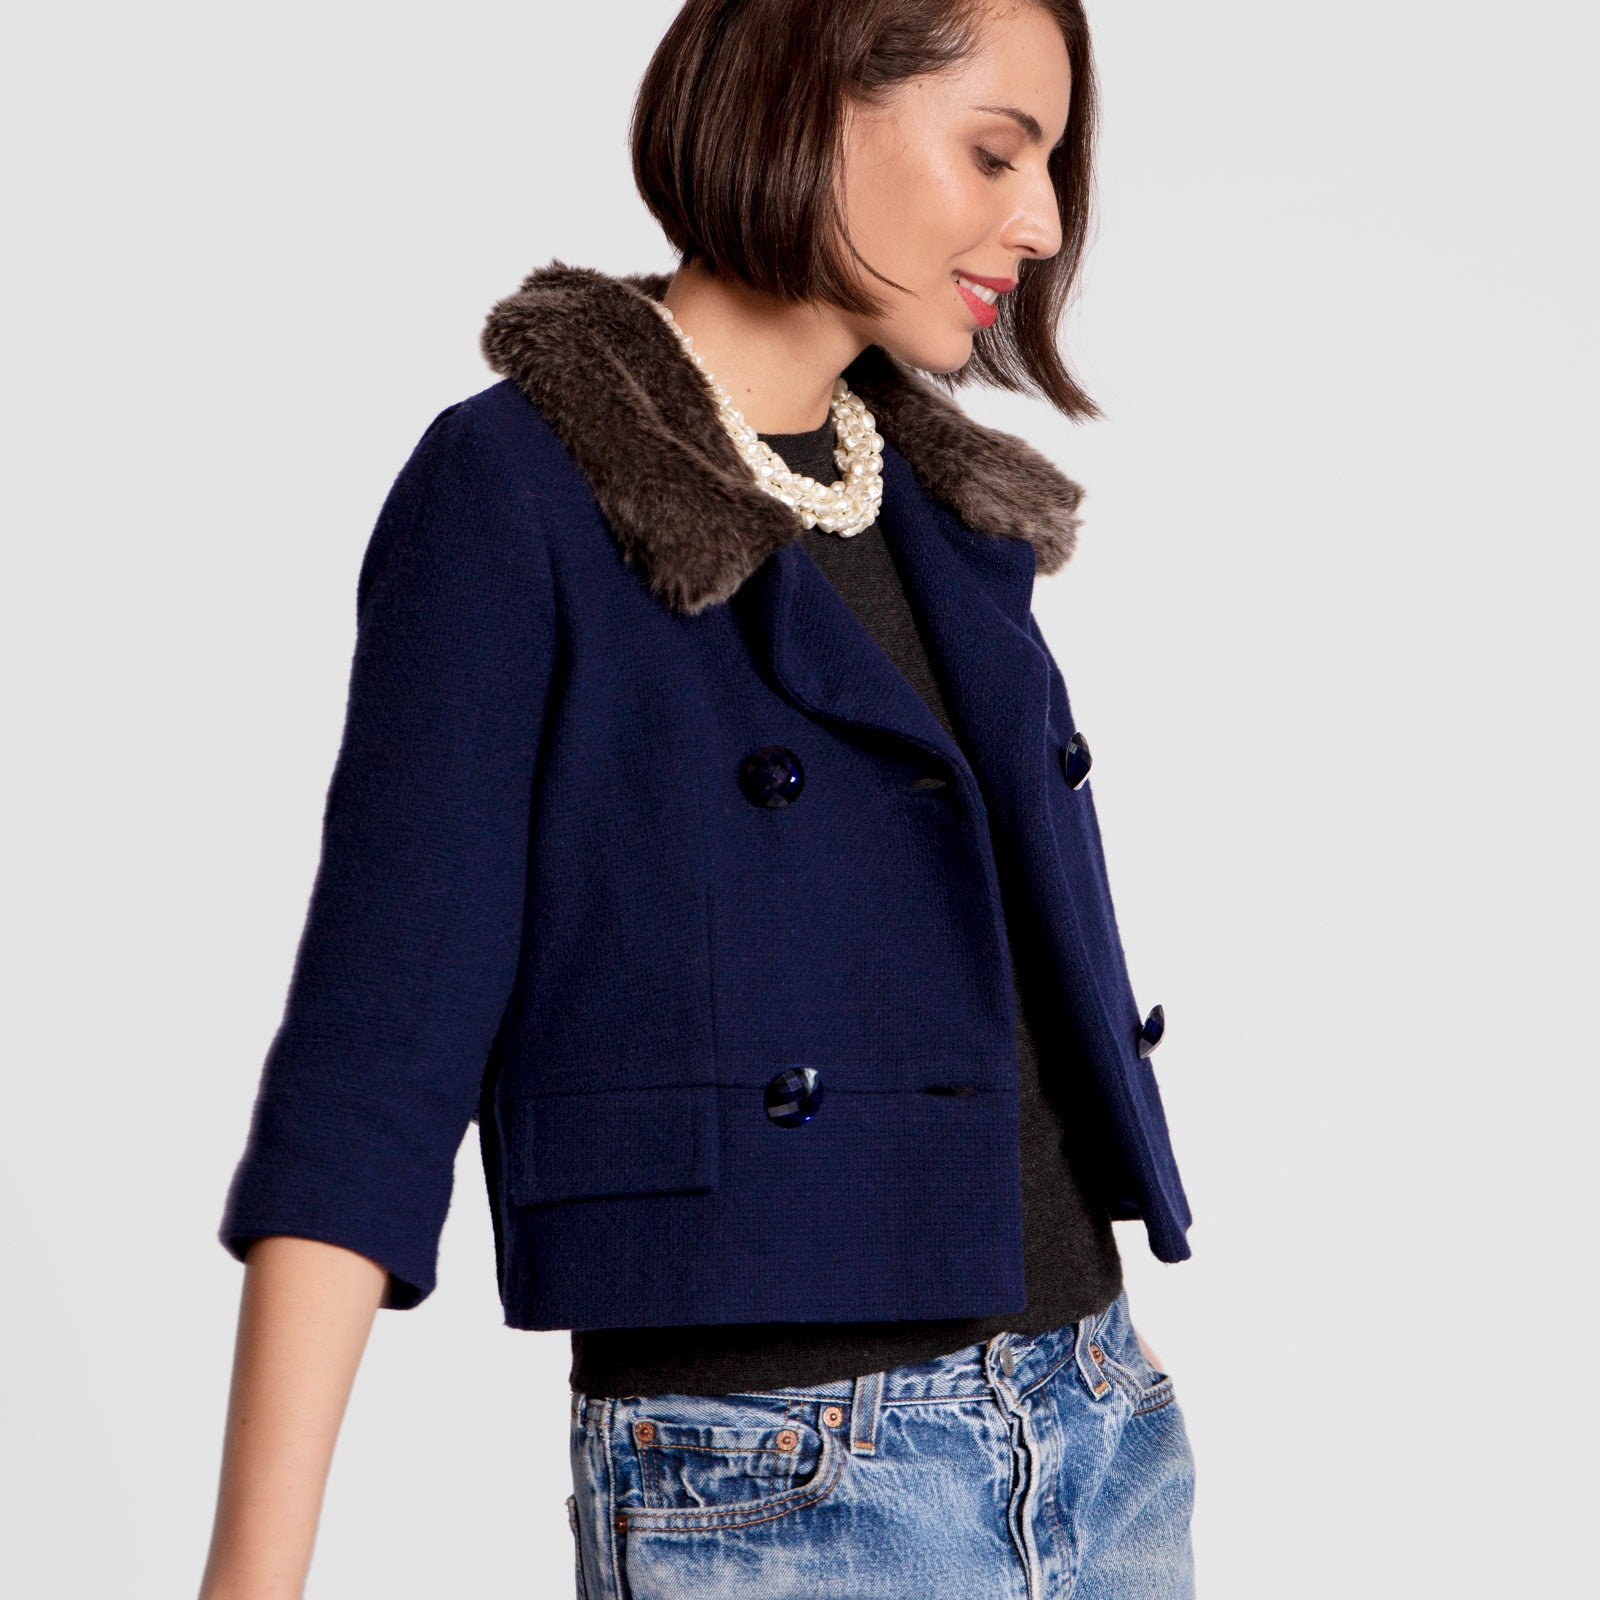 Gigi Lady Jacket Faux Fur Navy - Frances Valentine